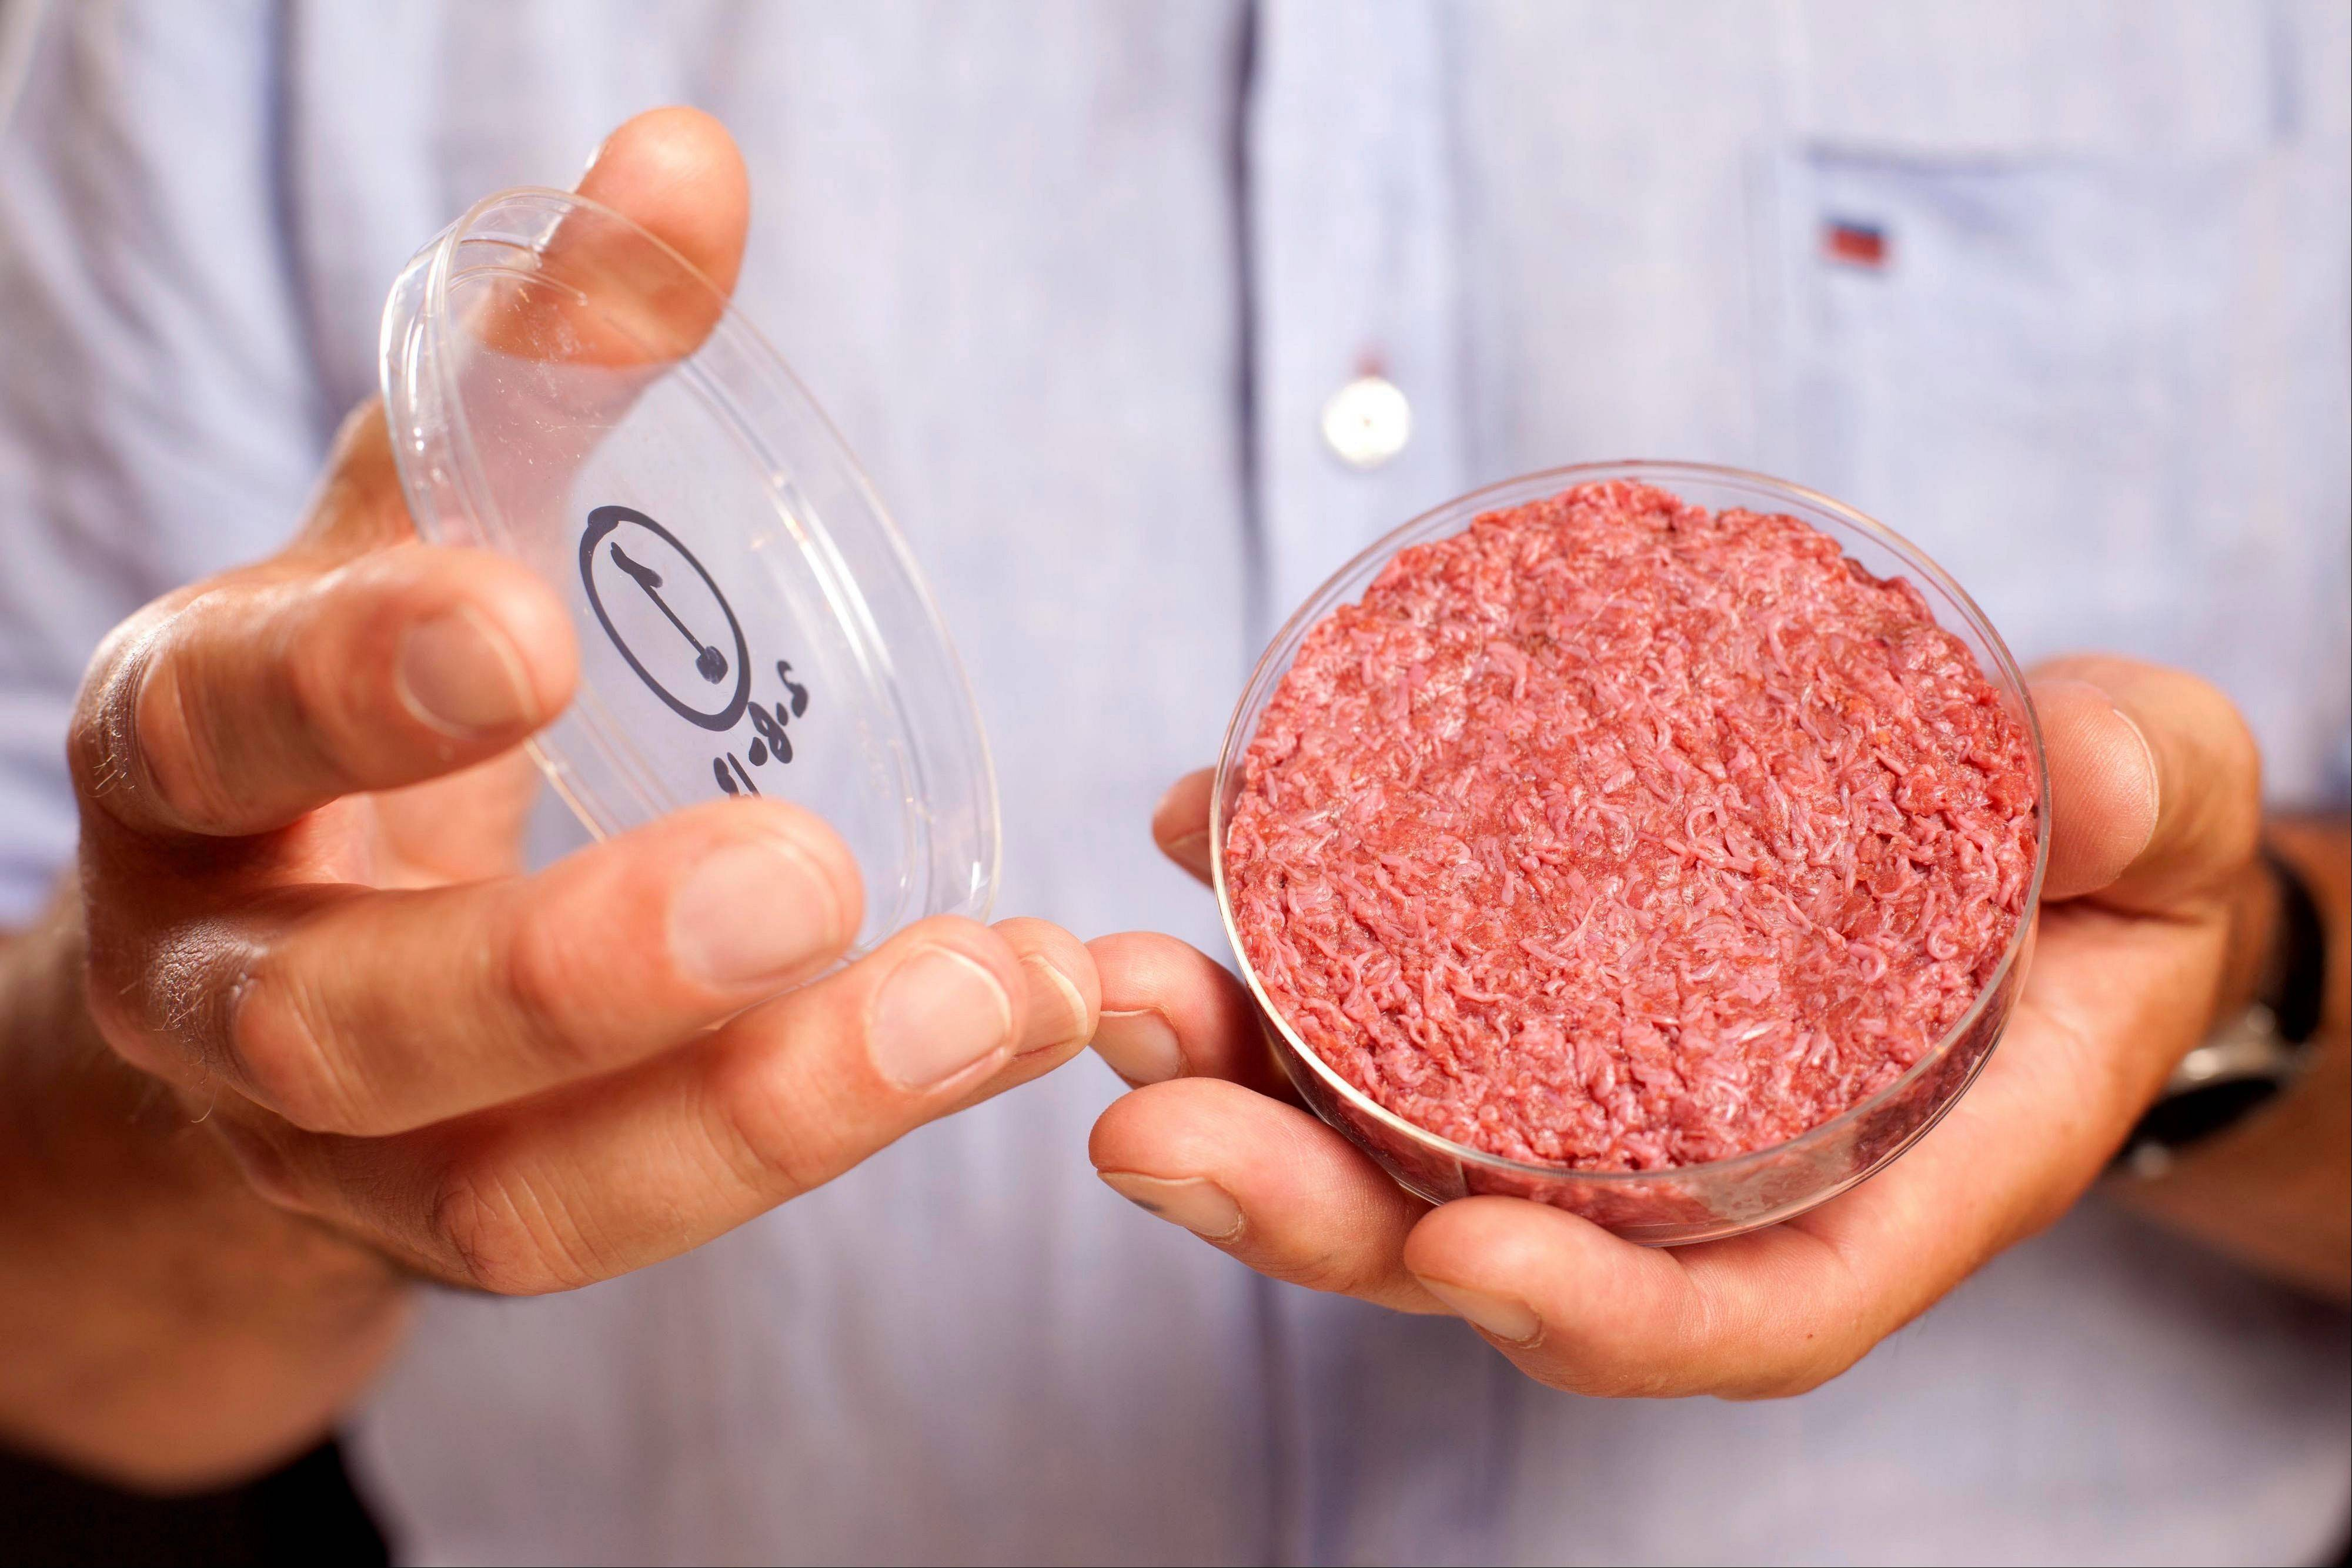 A new Cultured Beef Burger made from cultured beef grown in a laboratory from stem cells of cattle is held by the man who developed the burger, Professor Mark Post of Netherland's Maastricht University, during a the world's first public tasting event for the food product in London, Monday. The Cultured Beef could help solve the coming food crisis and combat climate change, according to the producers of the burger, which cost some 250,000 euros ($332,000) to produce.